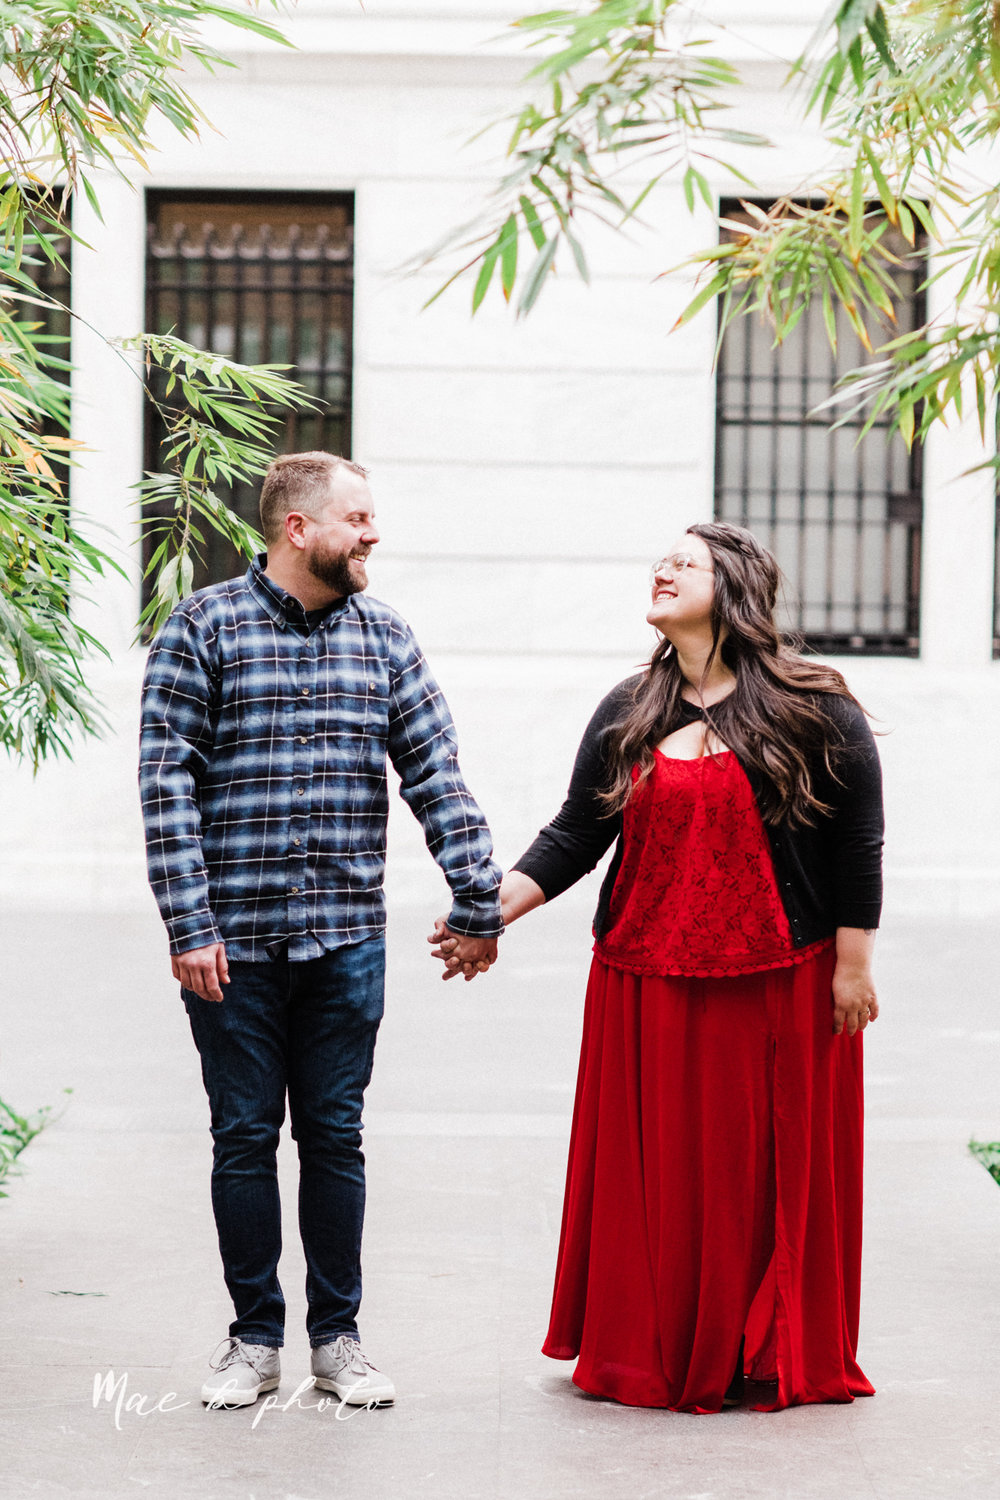 brad and kaitlin's winter museum engagement session at the cleveland museum of art and the cleveland natural history museum and the botanical gardens in cleveland ohio photographed by youngstown wedding photographer mae b photo-26.jpg